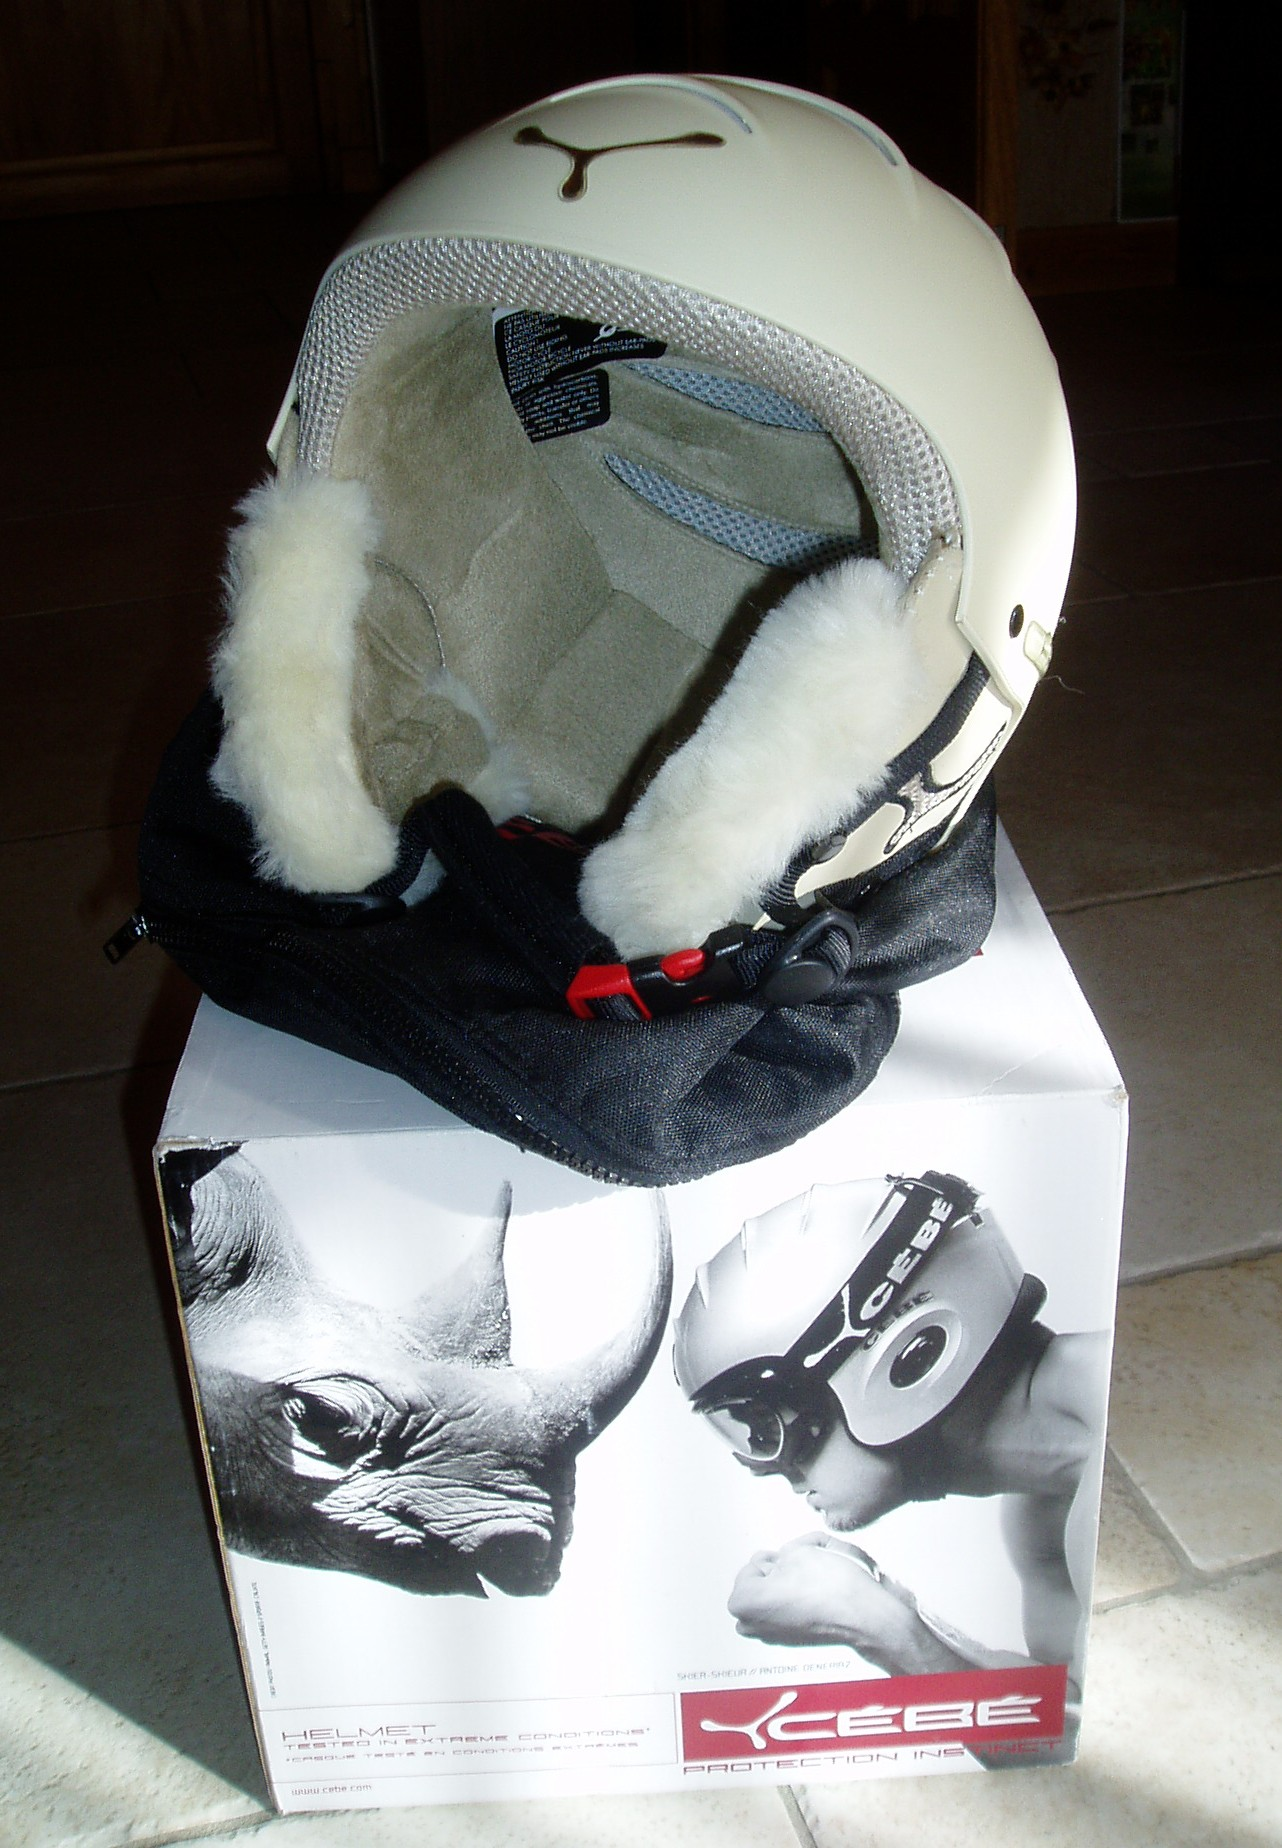 vend casque c b mat riel de ski alpin vendre. Black Bedroom Furniture Sets. Home Design Ideas